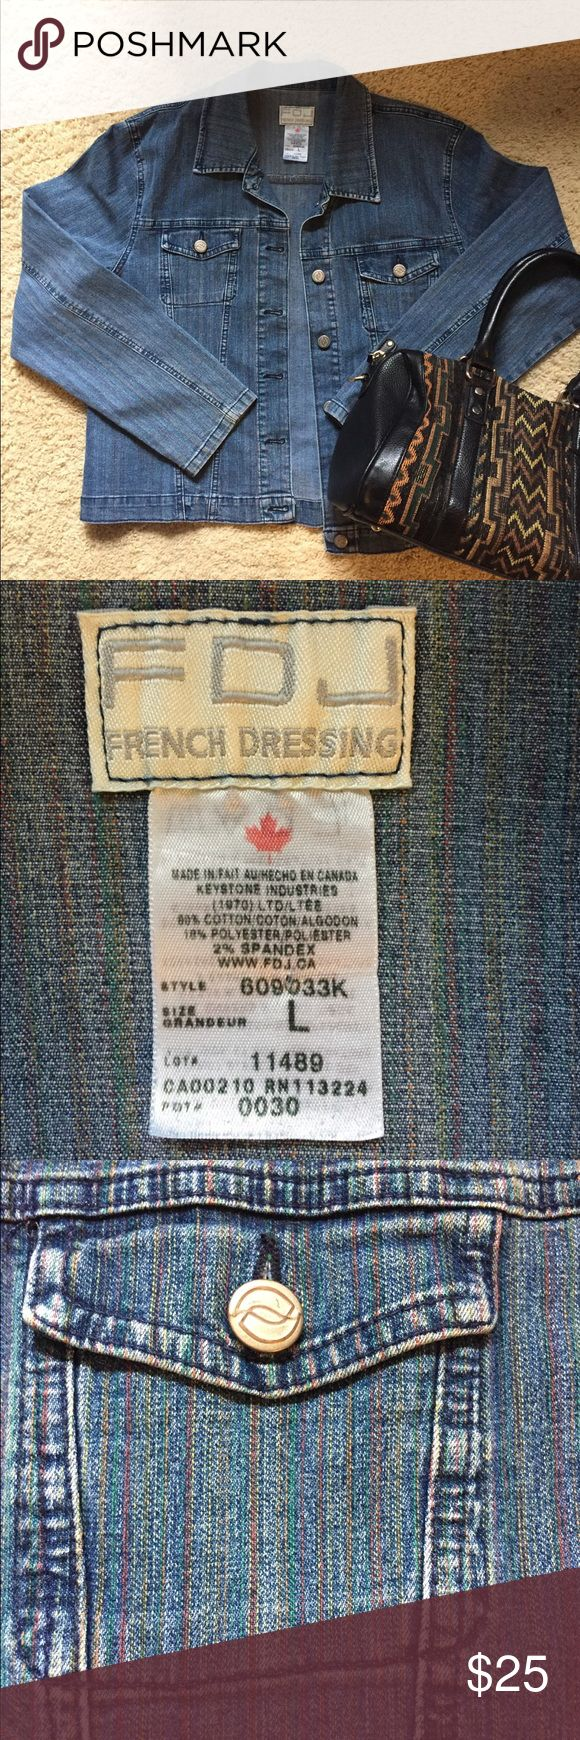 EUC French Dressing Jeans FDJ Large Denim Jacket EUC — like new! Large FDJ French Dressing Jeans. Denim is lightweight. Multi-colored pin-striping seen when looking very close. Street Level geometric purse not included in listing, but is available to purchase in my closet! Great bundle opportunity! French Dressing Jeans Jackets & Coats Jean Jackets